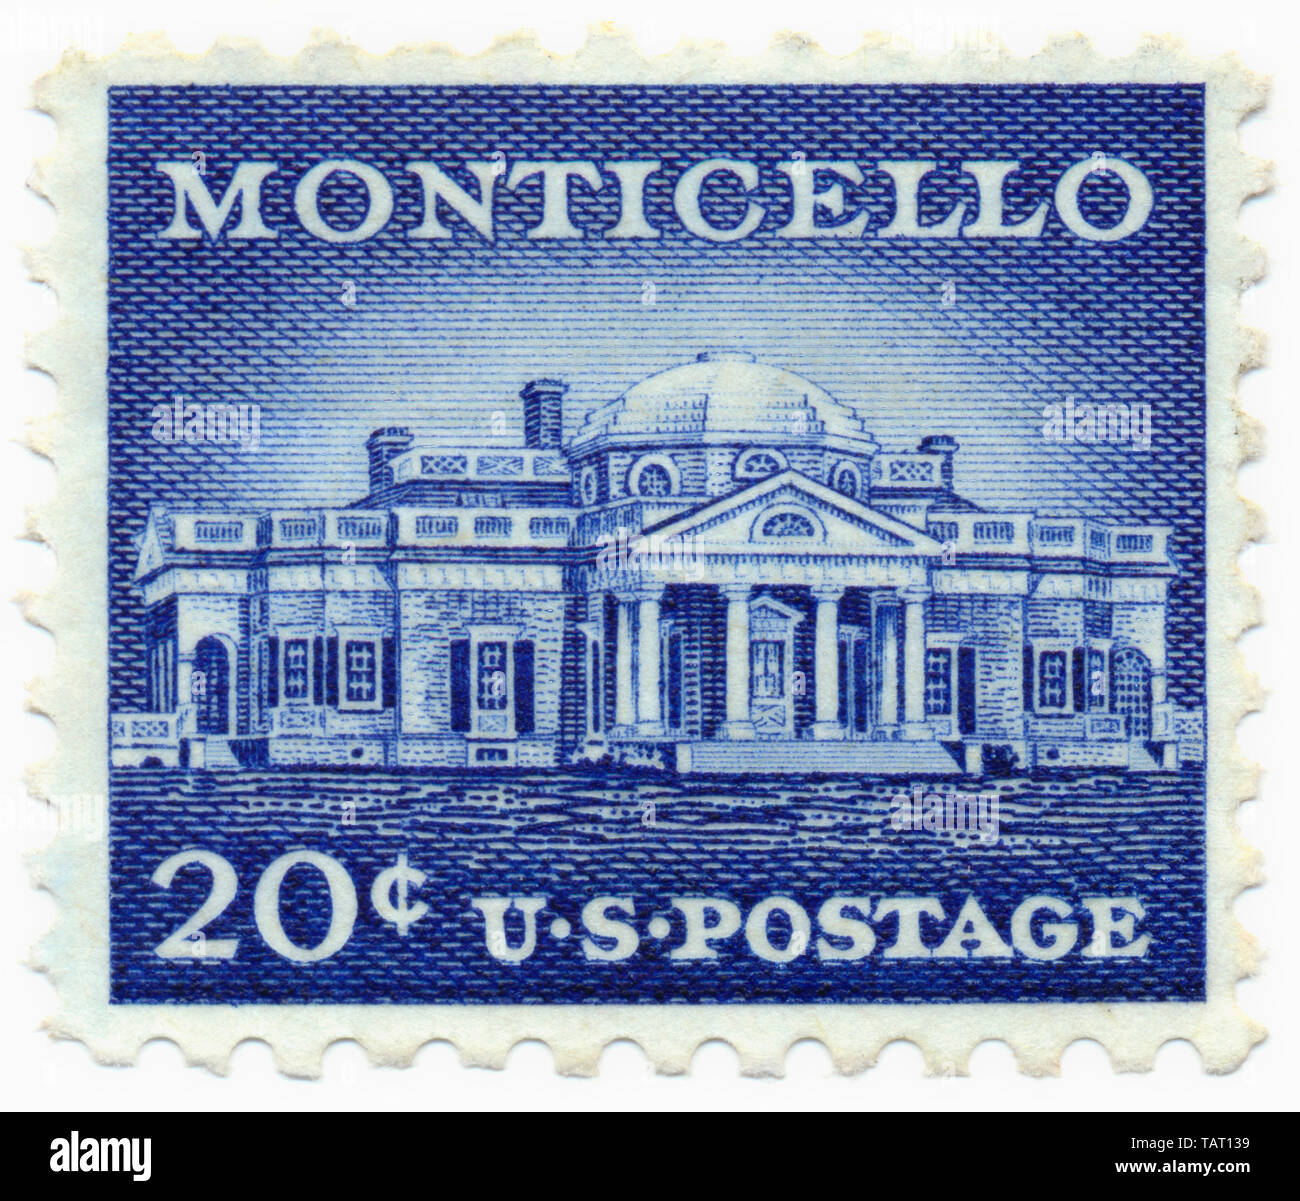 Historic postage stamp, the Monticello building, the Palladian-style country estate of President Thomas Jefferson, Historische Briefmarken, 20 cent, 1956, Monticello, das im palladianischen Stil erbaute Landgut des US-Präsidenten Thomas Jefferson, Virginia, USA - Stock Image